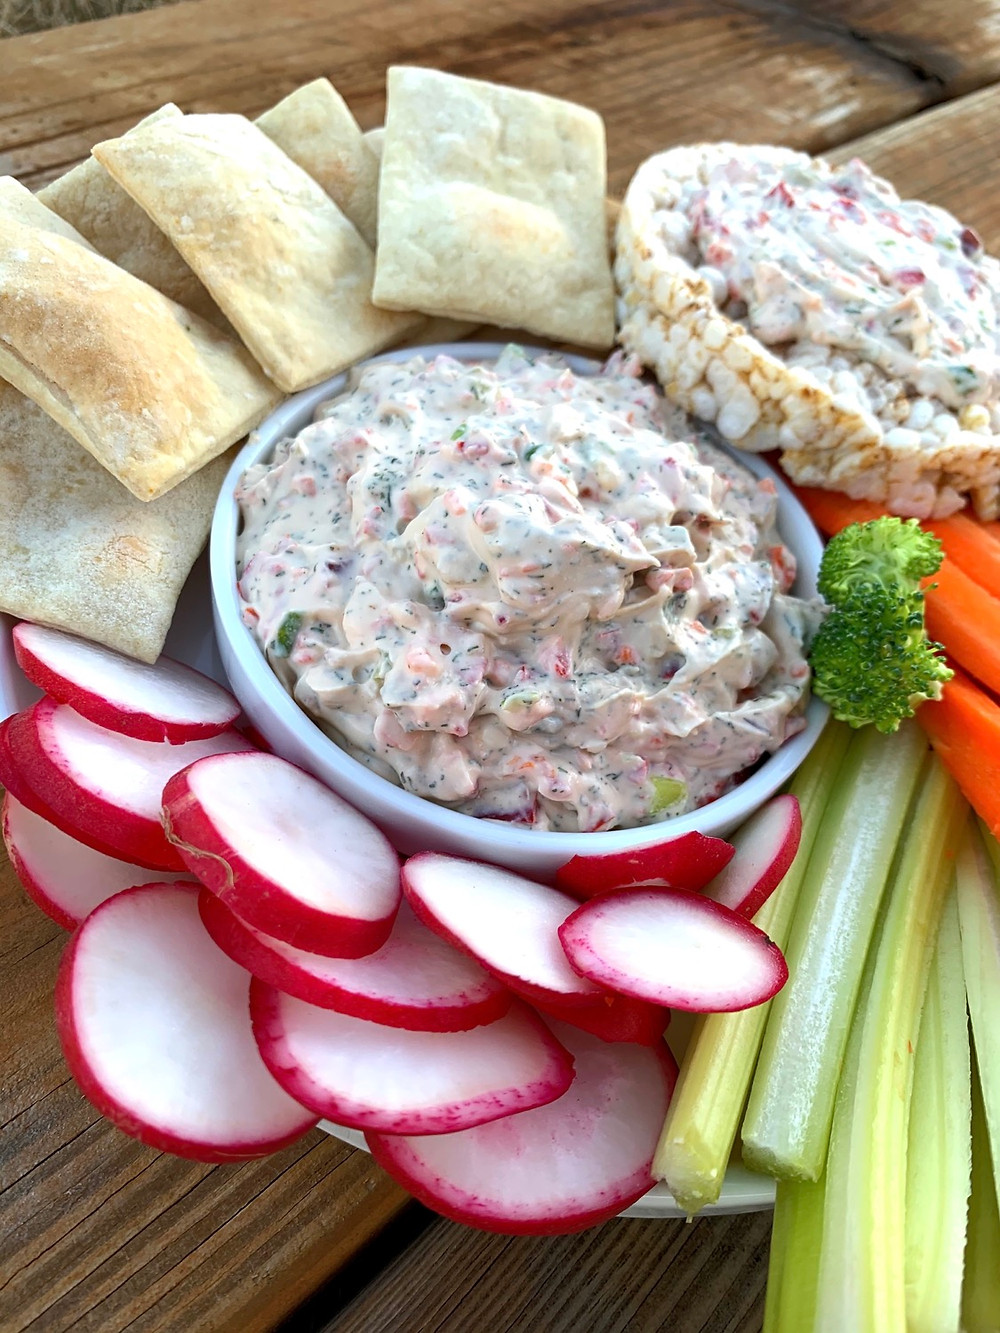 Vegan vegetable cream cheese with homemade crackers, rice cakes and fresh vegetables